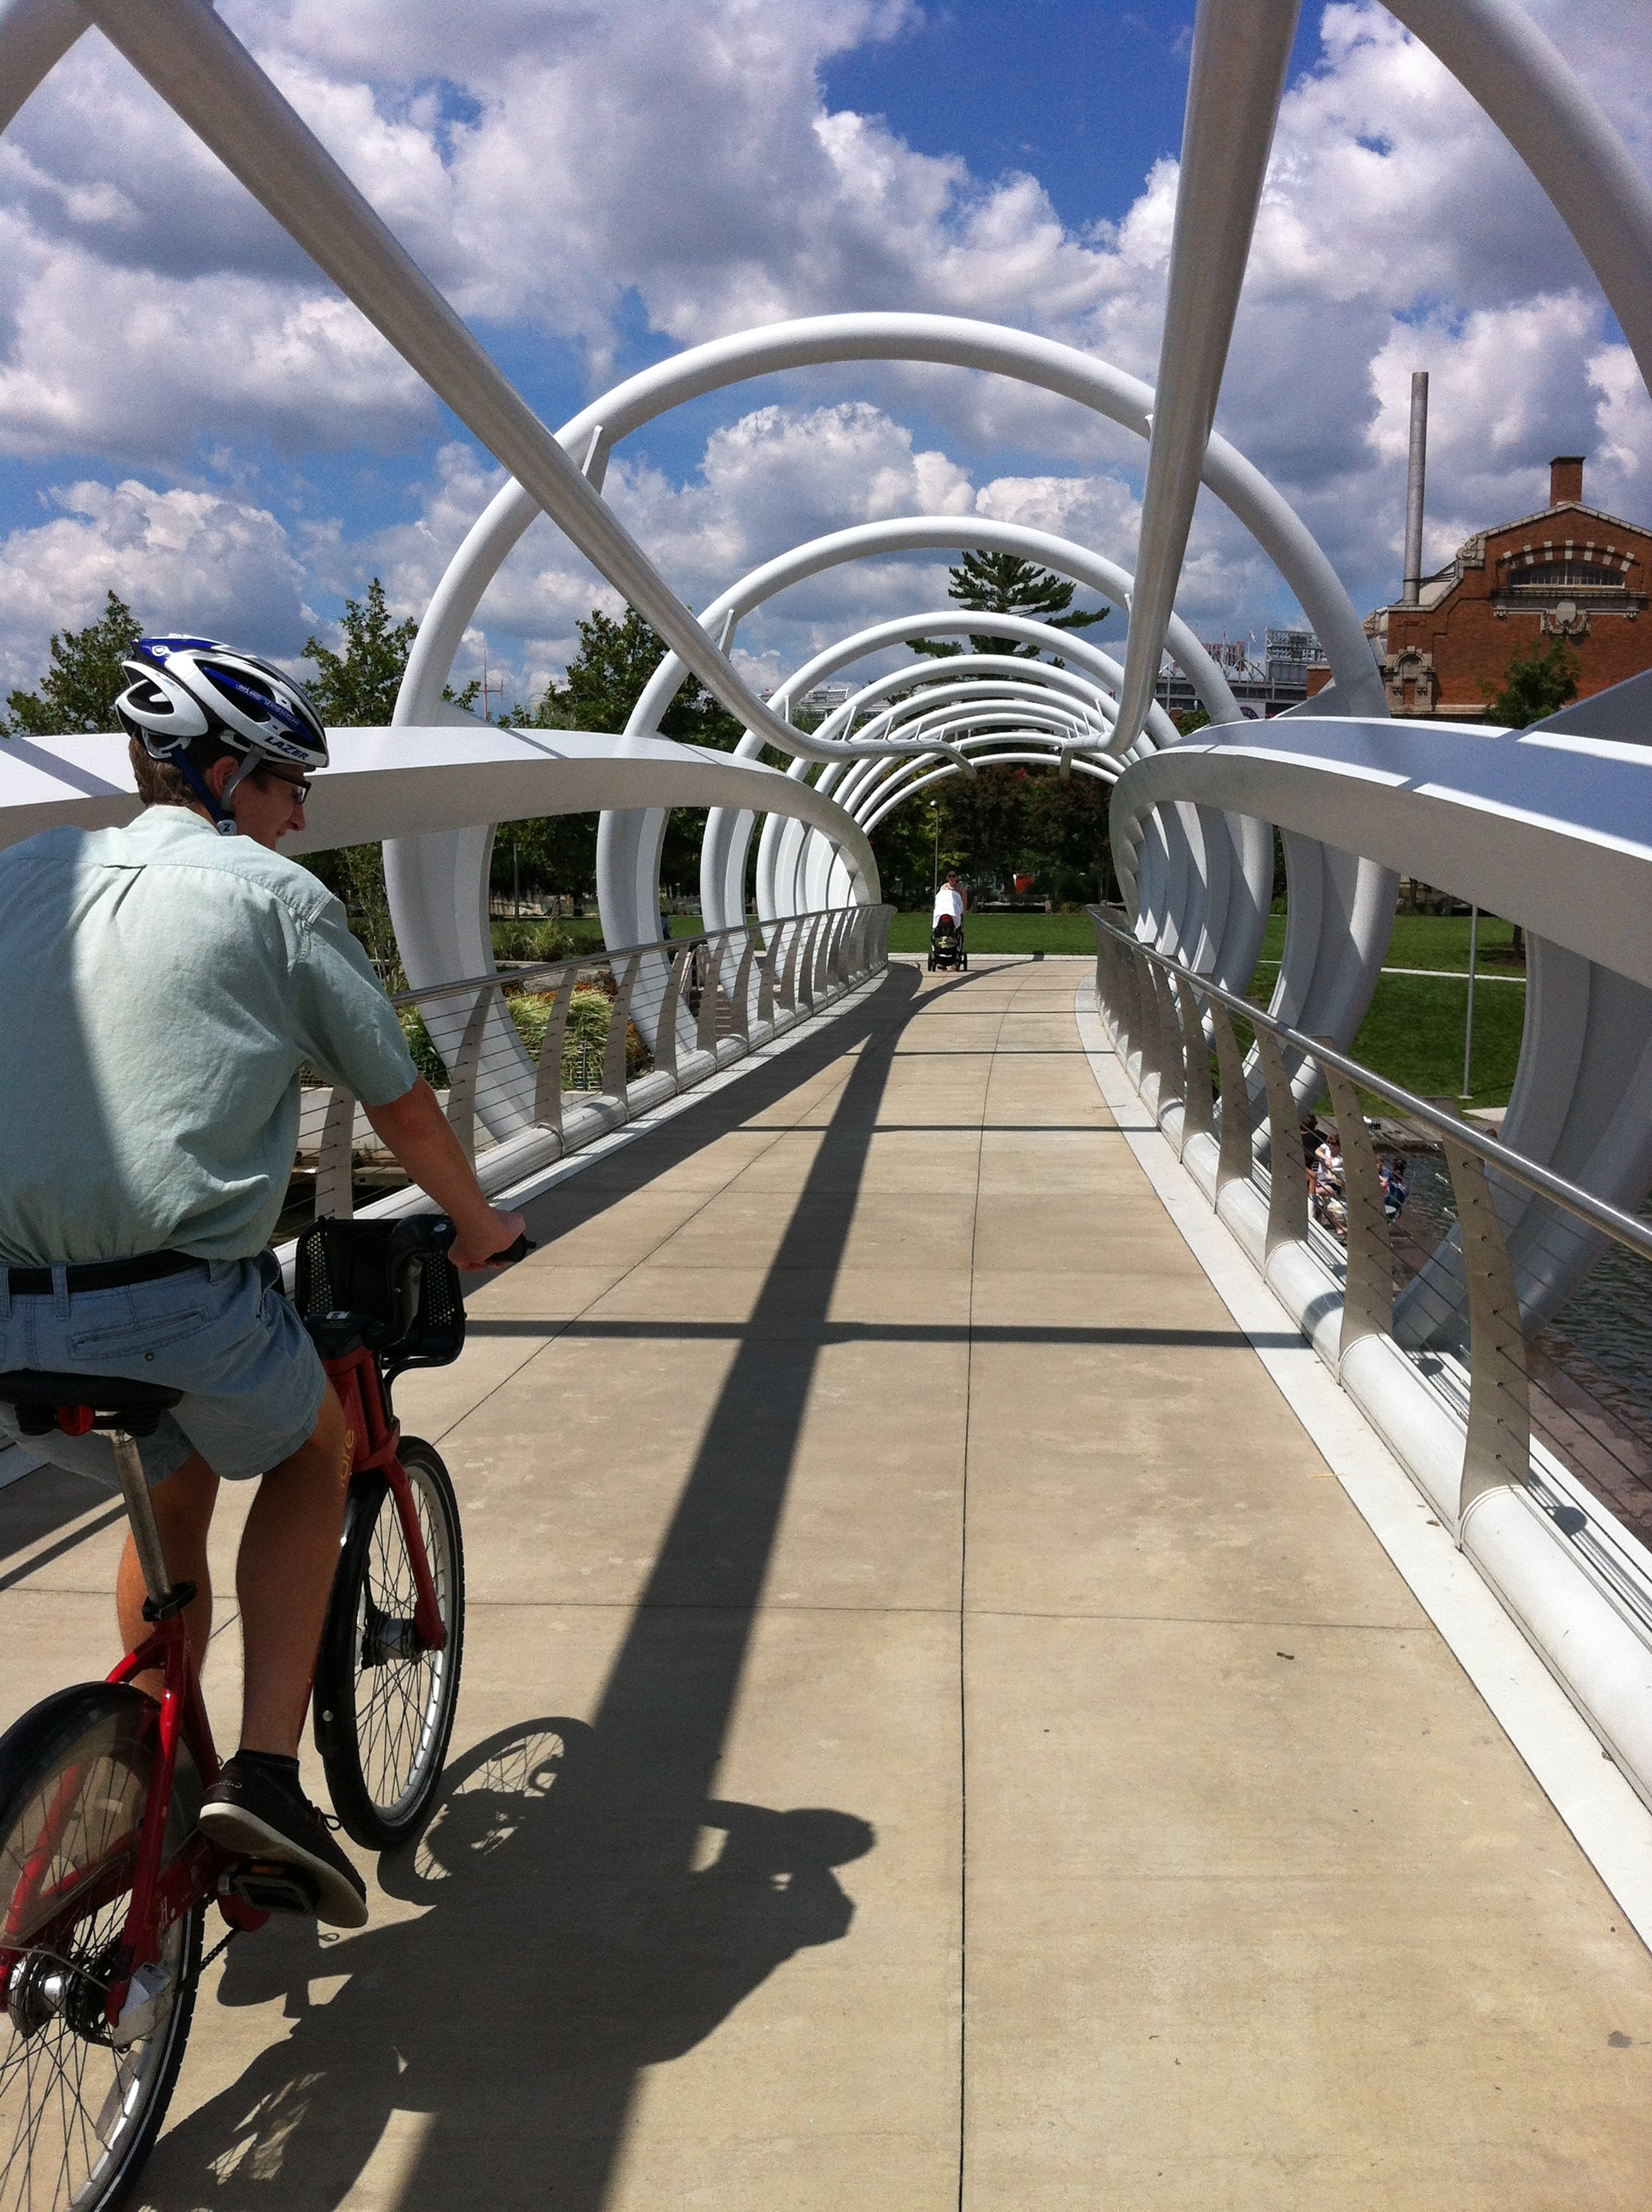 The tunnel bridge at Yards Park on the Anacostia River waterfront